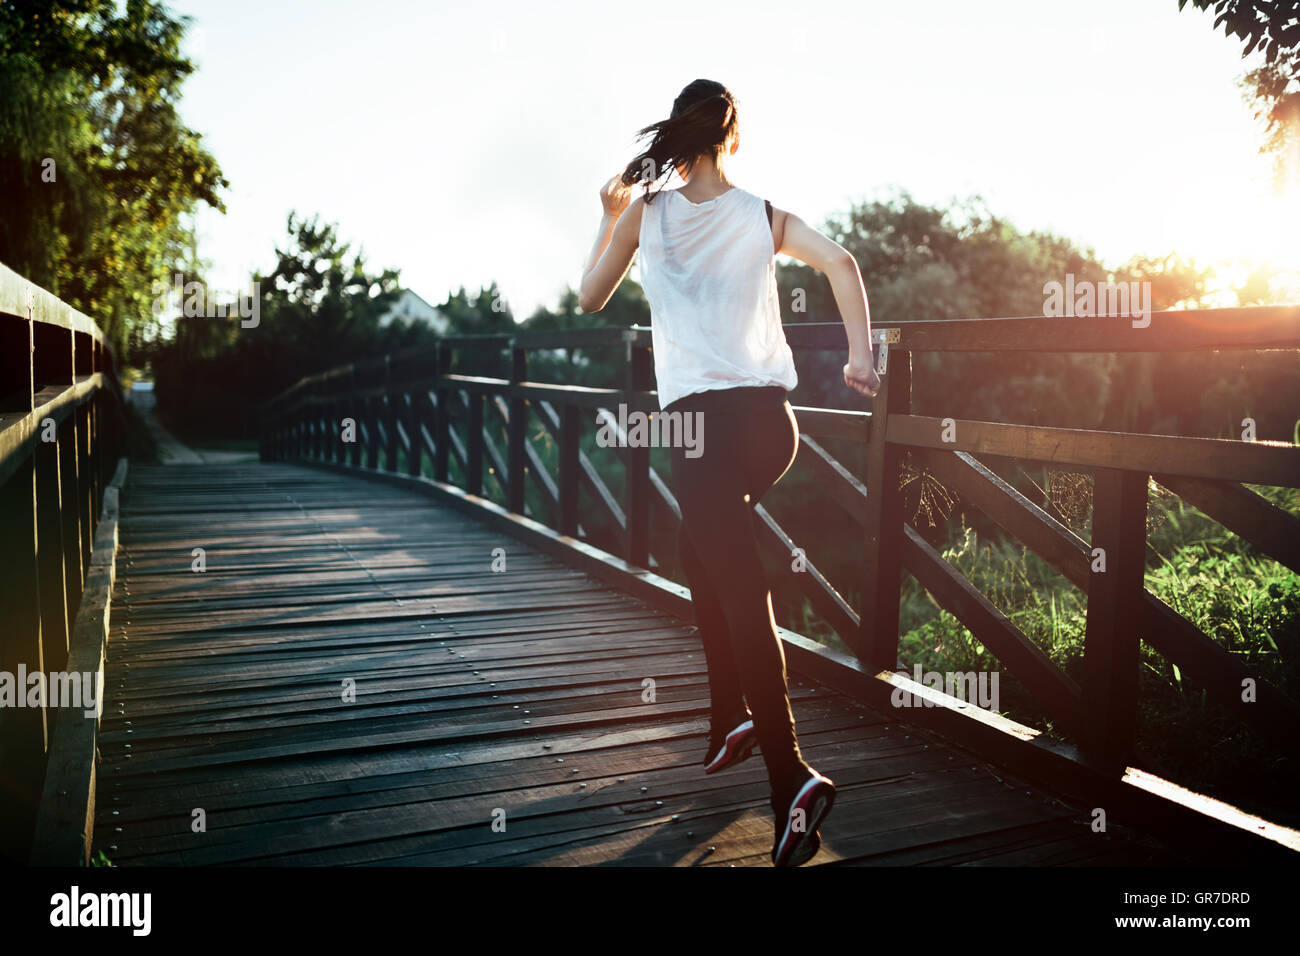 Beautiful athletic jogger crossing bridge - Stock Image